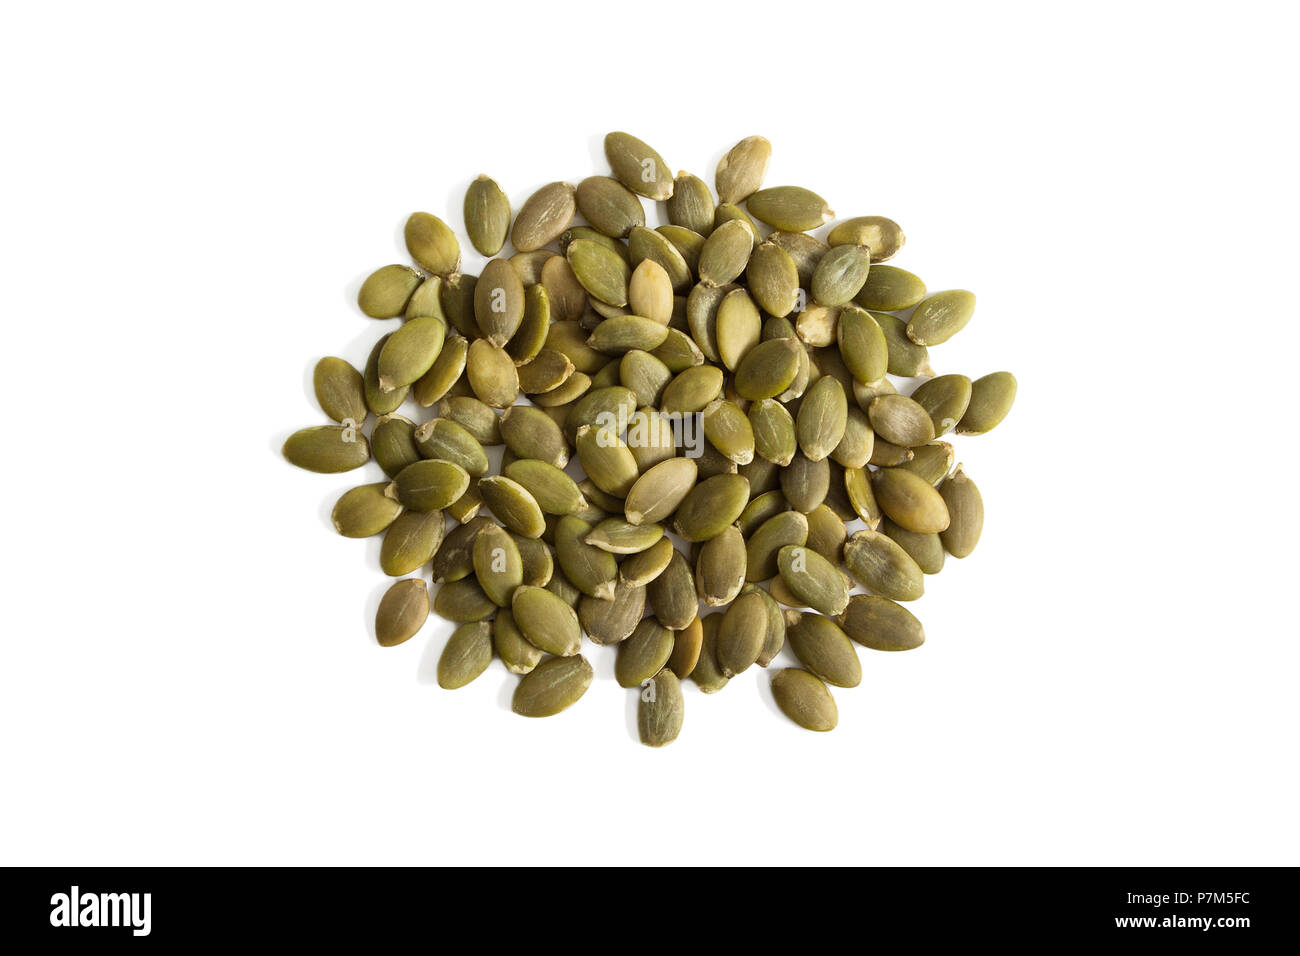 Isolated uncooked green pumpkin seeds on a white background from above. Stock Photo